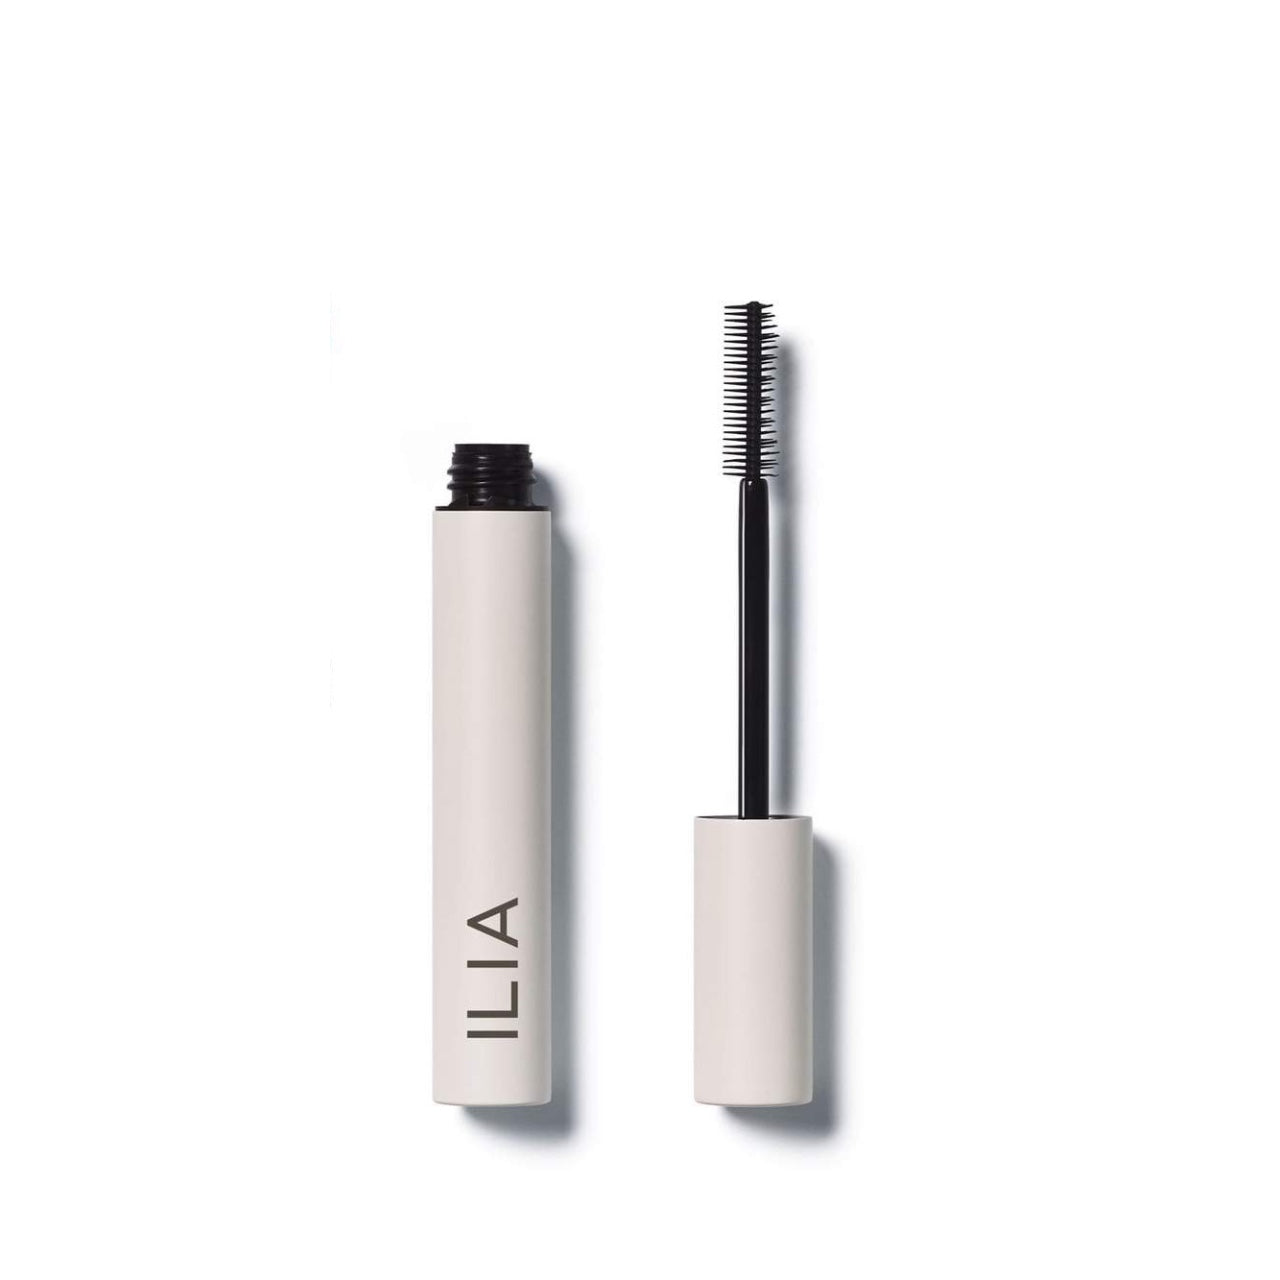 ILIA Limitless Lash Mascara - After Midnight